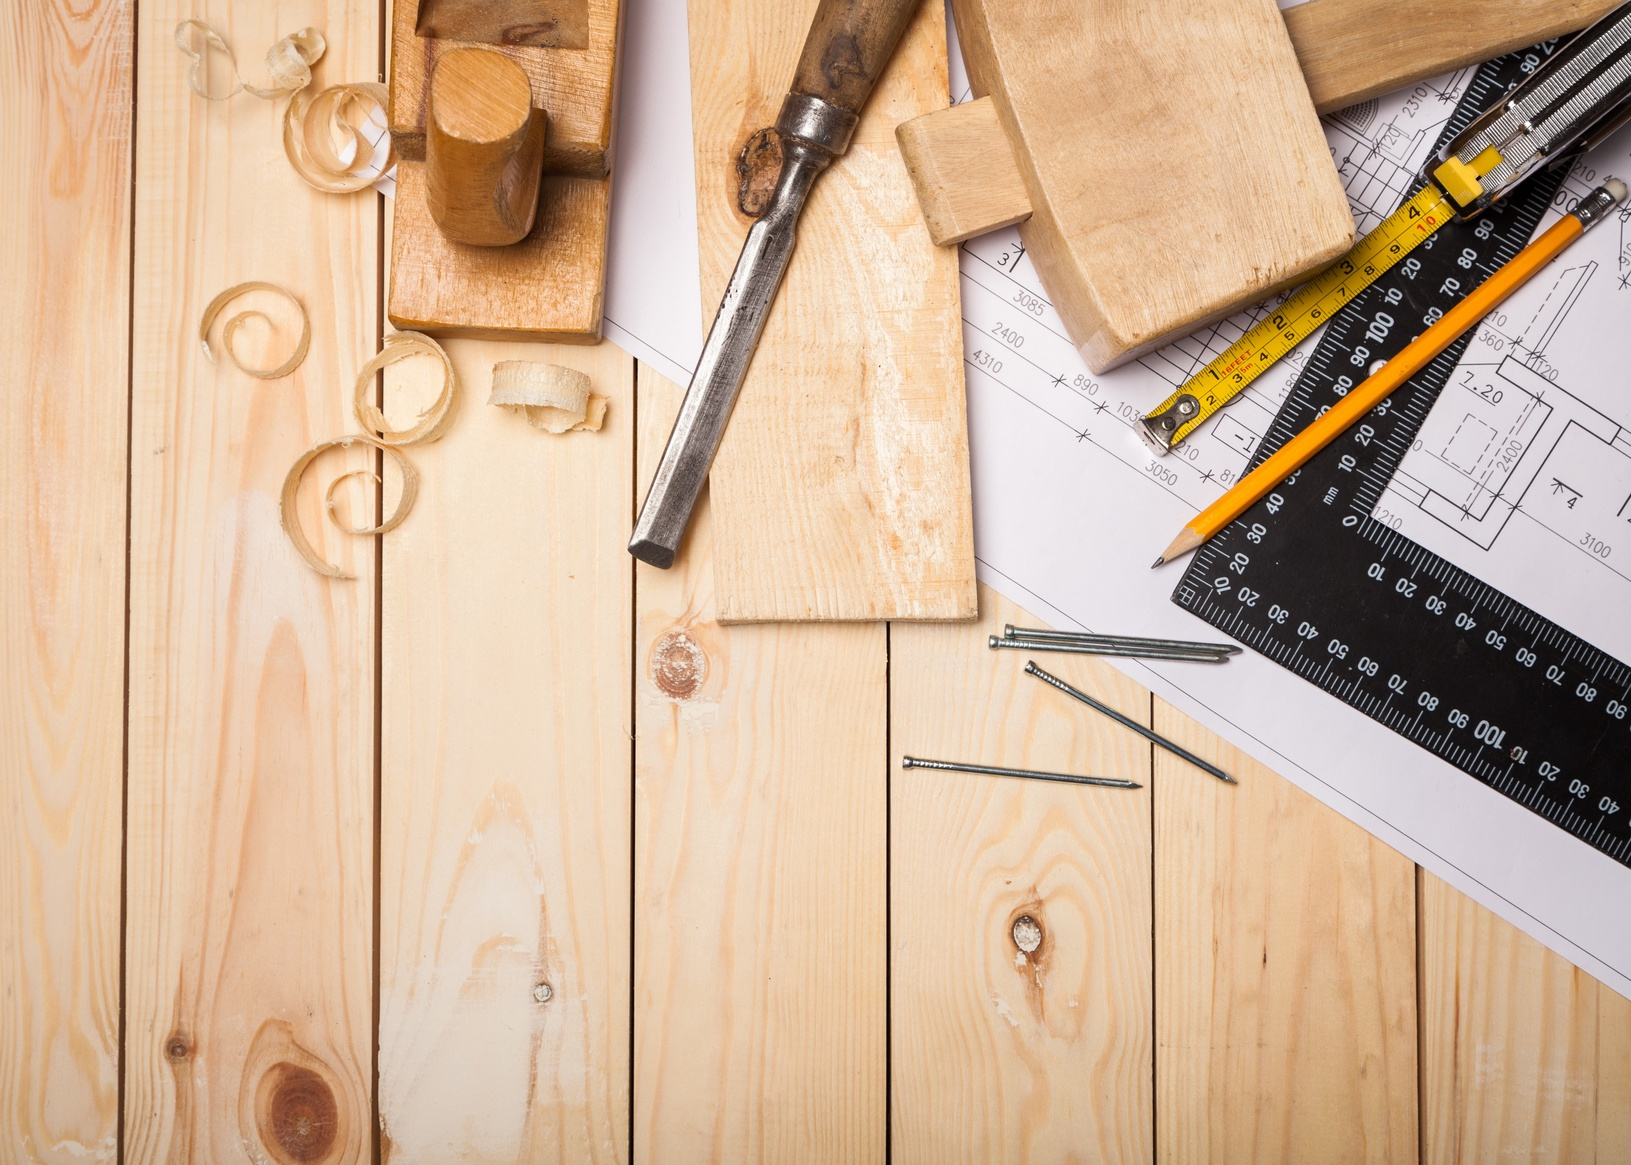 Three Considerations For Choosing Your First Woodworking Plans